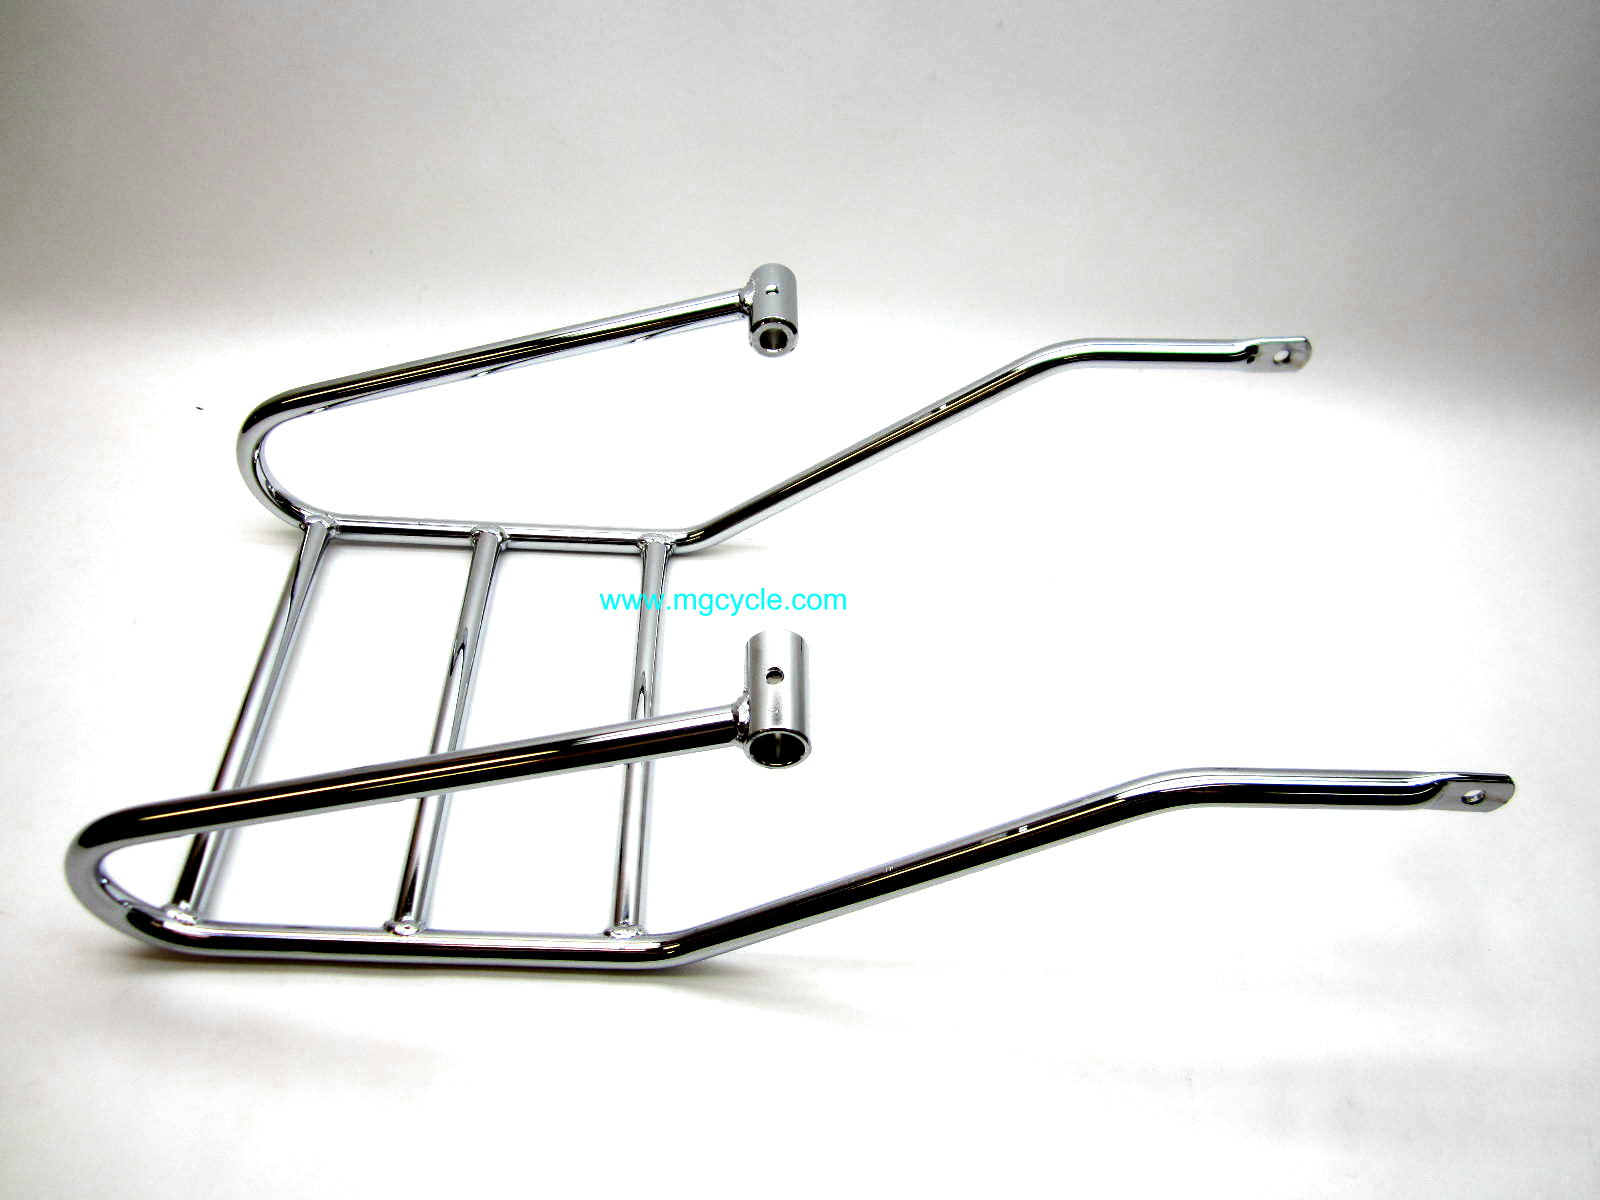 luggage rack 850 LeMans, LeMans II, CX100 - Click Image to Close